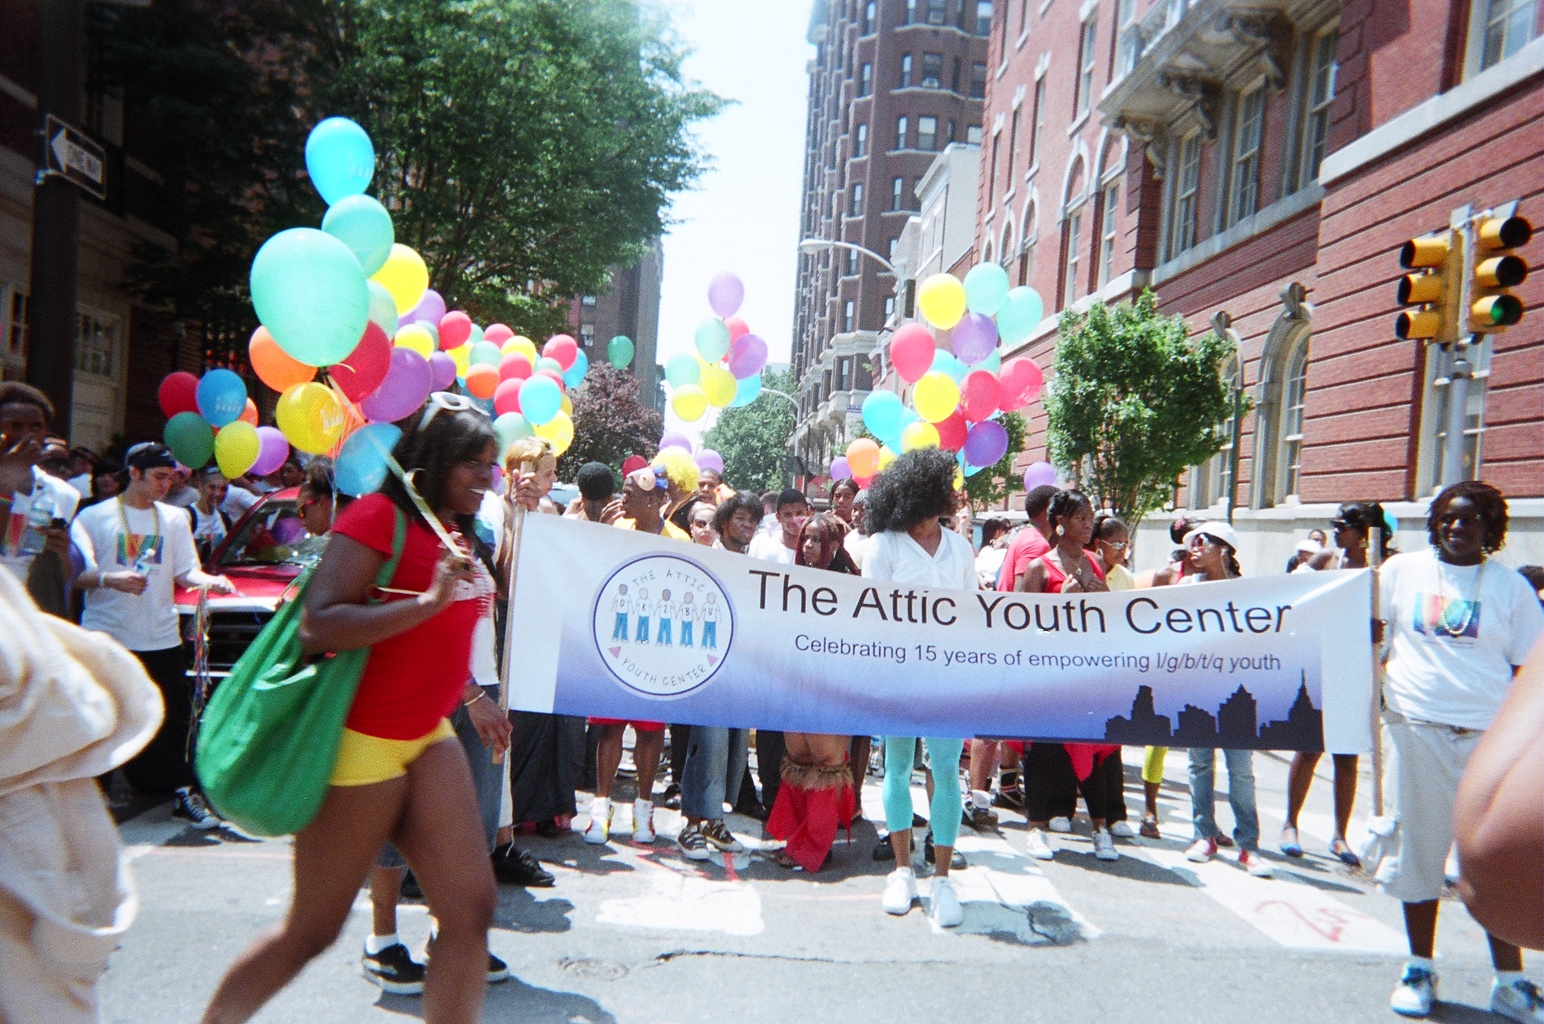 theatticyouthcenter_th.jpg